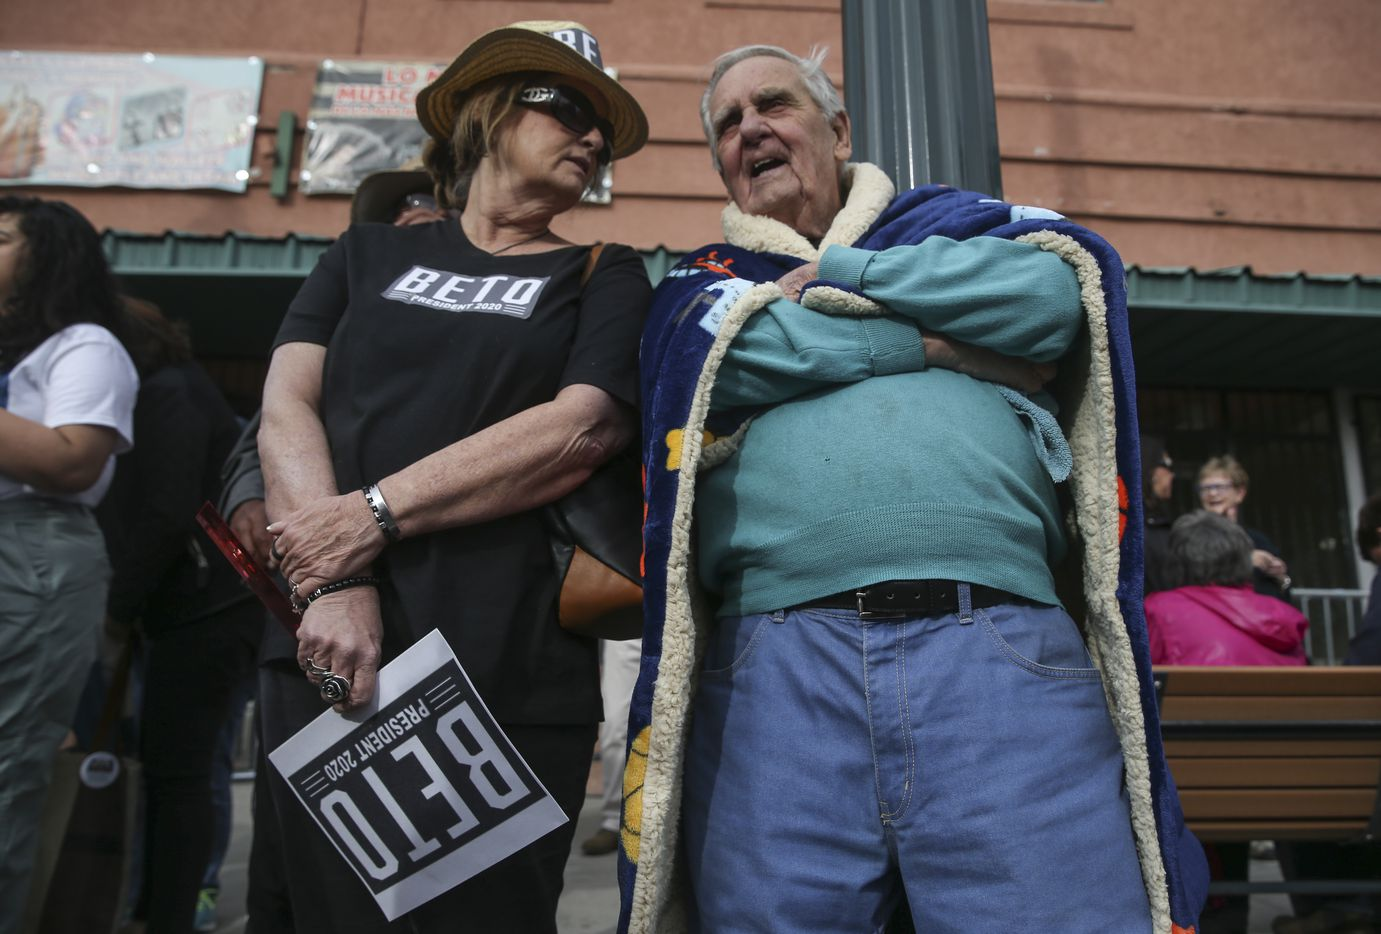 """Karen Layne of Las Cruces talked to her dad, Frank Mangold, 91, of Las Cruces prior to the start of a Beto O'Rourke presidential campaign kickoff rally in downtown El Paso on Saturday, March 30, 2019. """"For me, it's because he's honest,"""" Layne said of Beto O'Rourke. """"He's young. He's Kennedy like."""""""